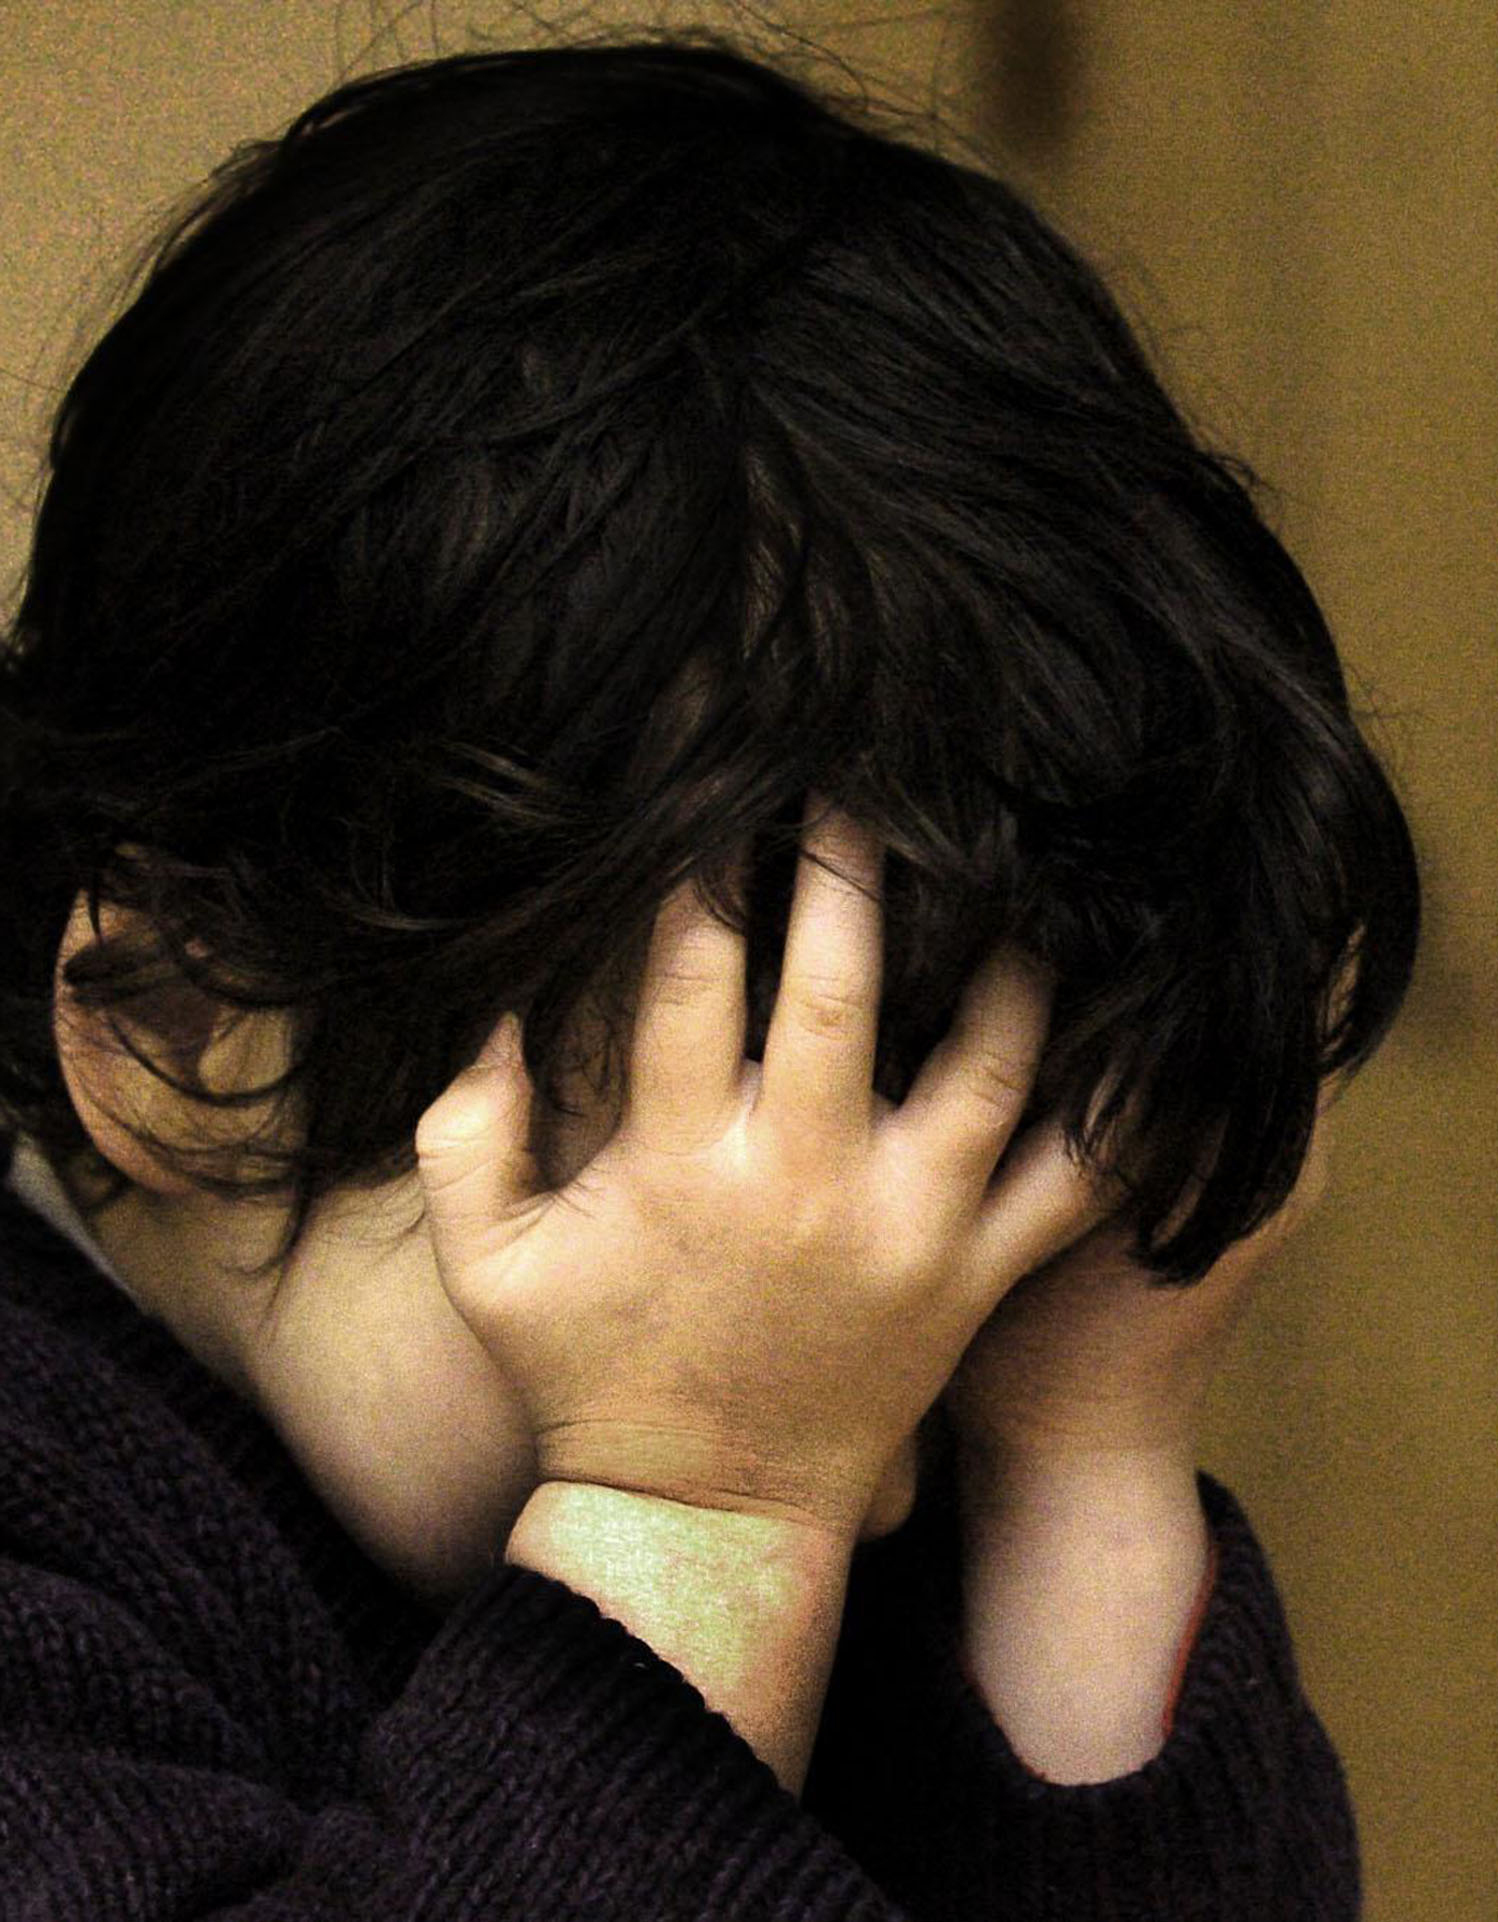 The helpline provided the equivalent of 11 counselling sessions a day in 2016/17, 4,063 in total, to children and young people suffering from loneliness. (David Cheskin/PA Wire)